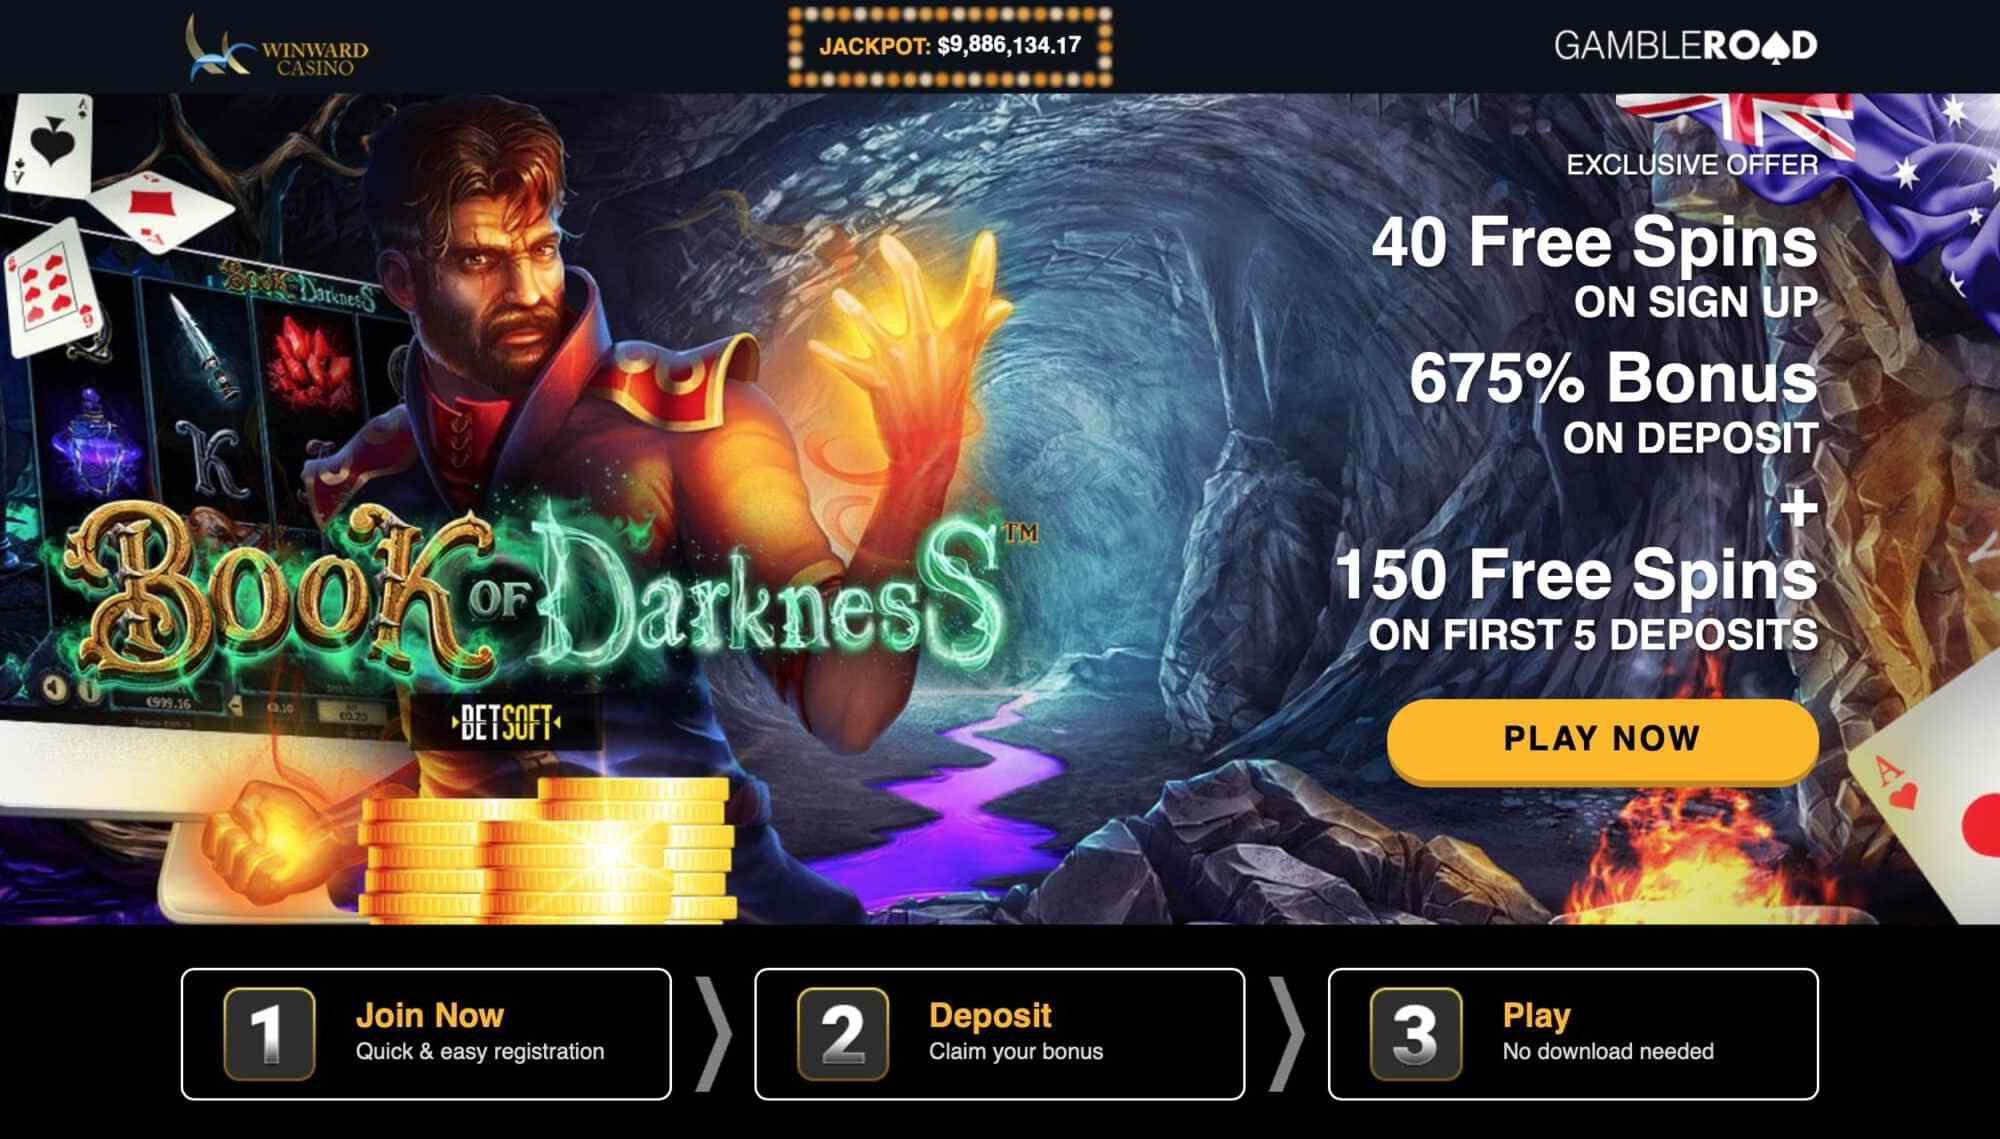 Winward Casino - Get 40 Free Spins On Sign Up